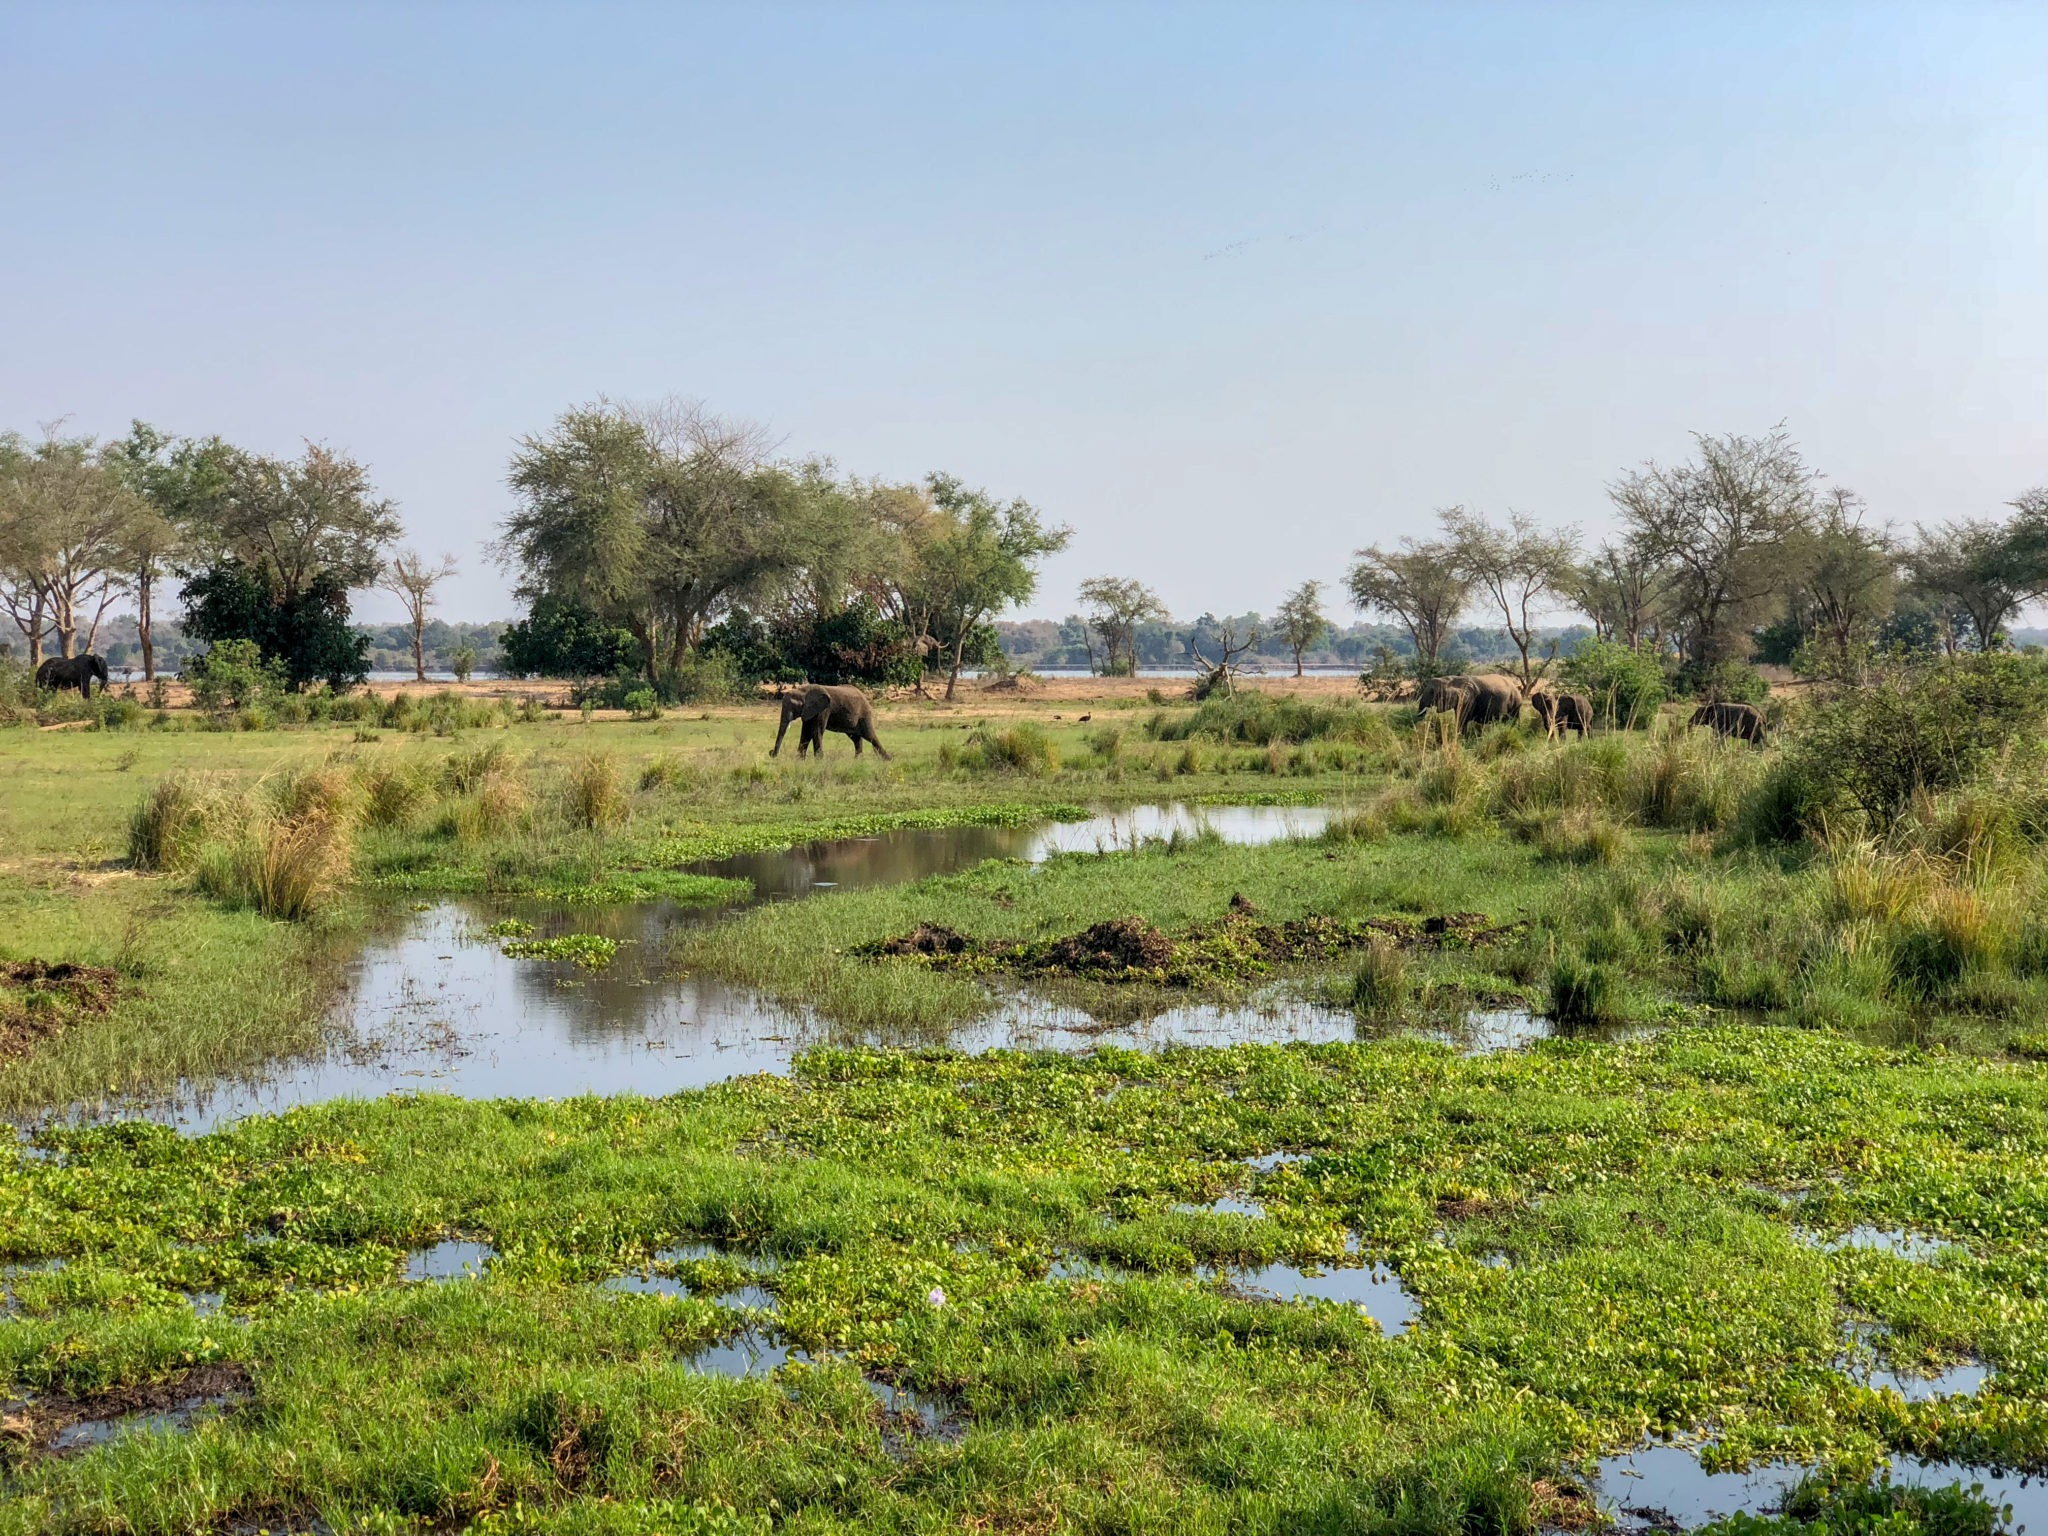 lower zambezi tusk and mane landscape elephant